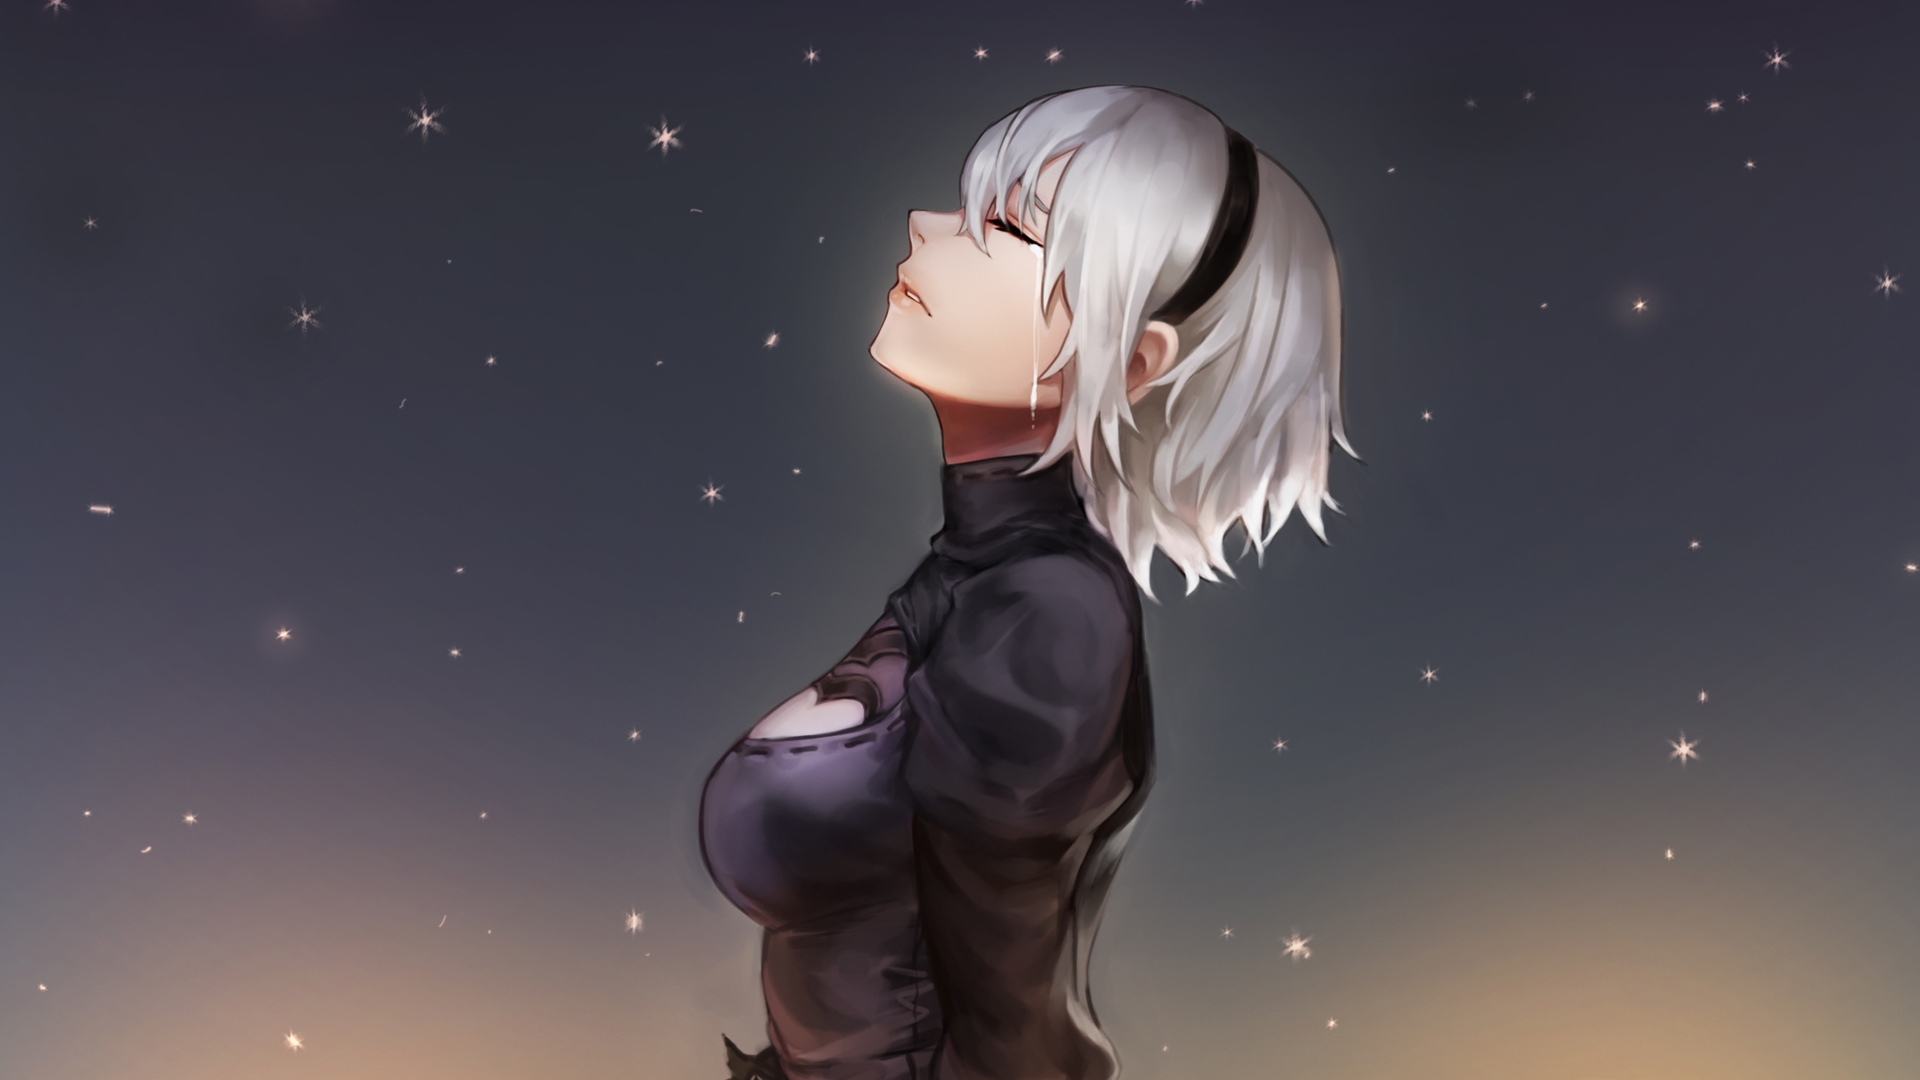 Sad Girl Mobile Wallpaper Wallpaper Video Games Nier Automata Nier Crying